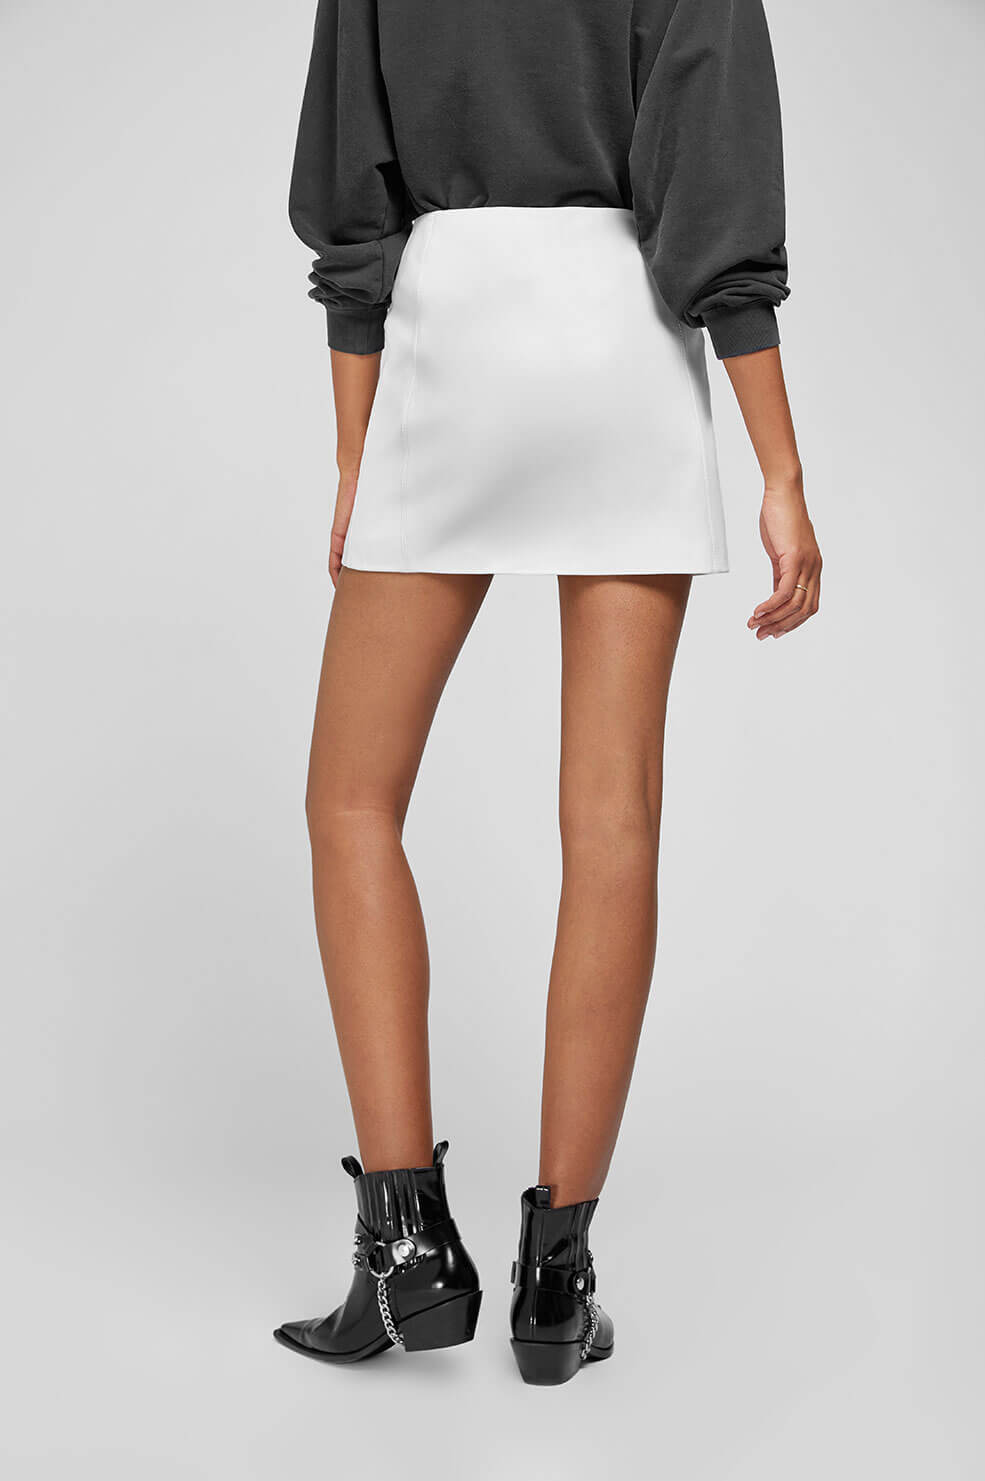 ANINE BING Sally Leather Skirt - White